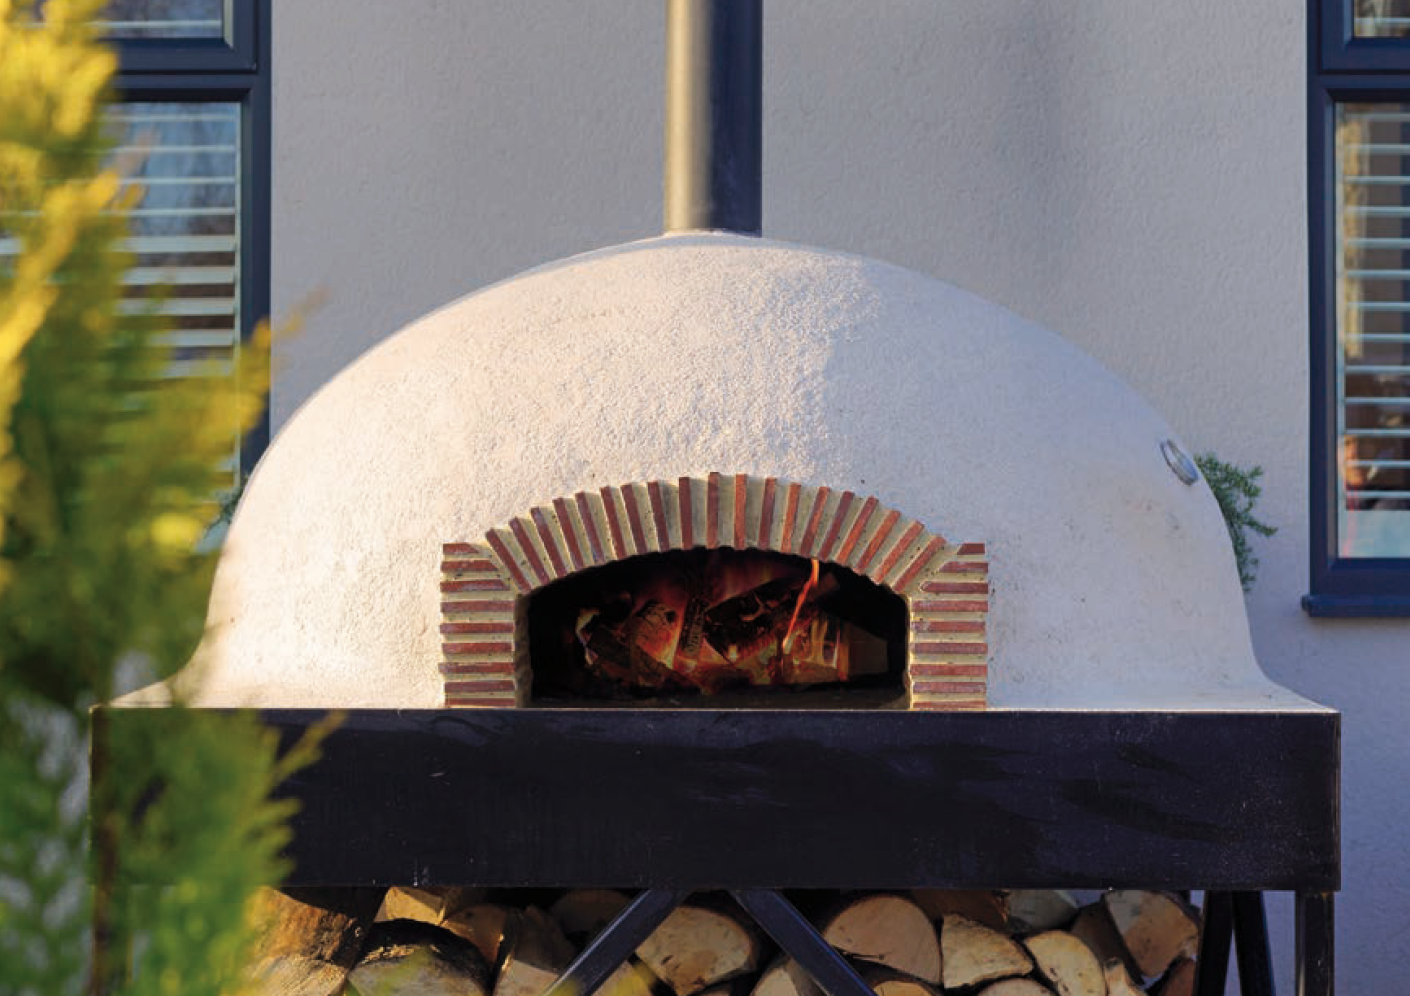 Pilkington Homes & Garden Kitchens outdoor living & dining, pizza ovens, asado crosses, parrilla grills garden furniturewood fired cooking, Pizza Oven Hand-made Oxfordshire004